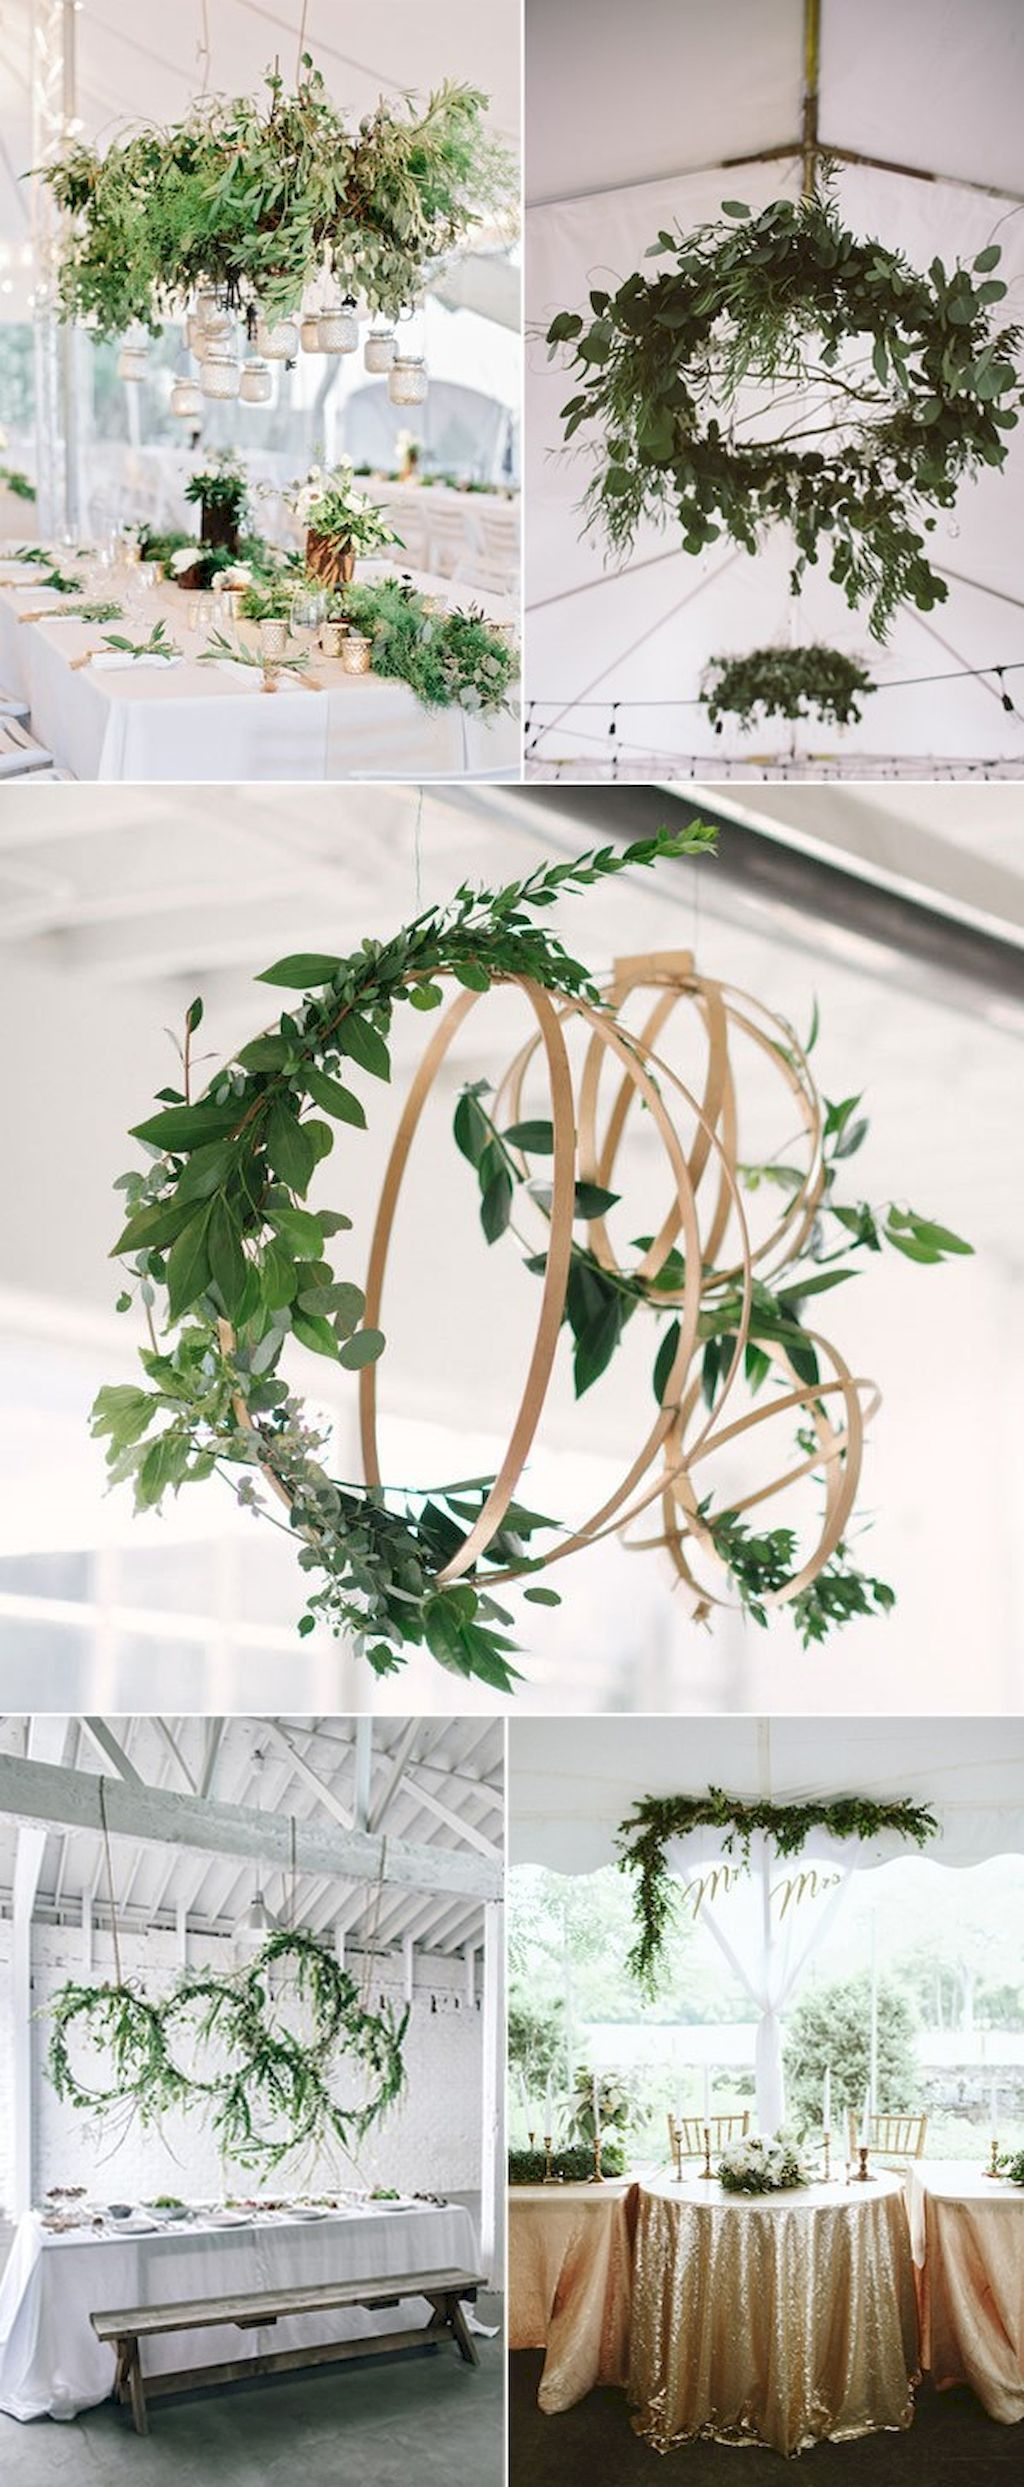 Wedding decoration ideas 2018   Simple Greenery Wedding Centerpieces Decor Ideas  Wedding BOOM